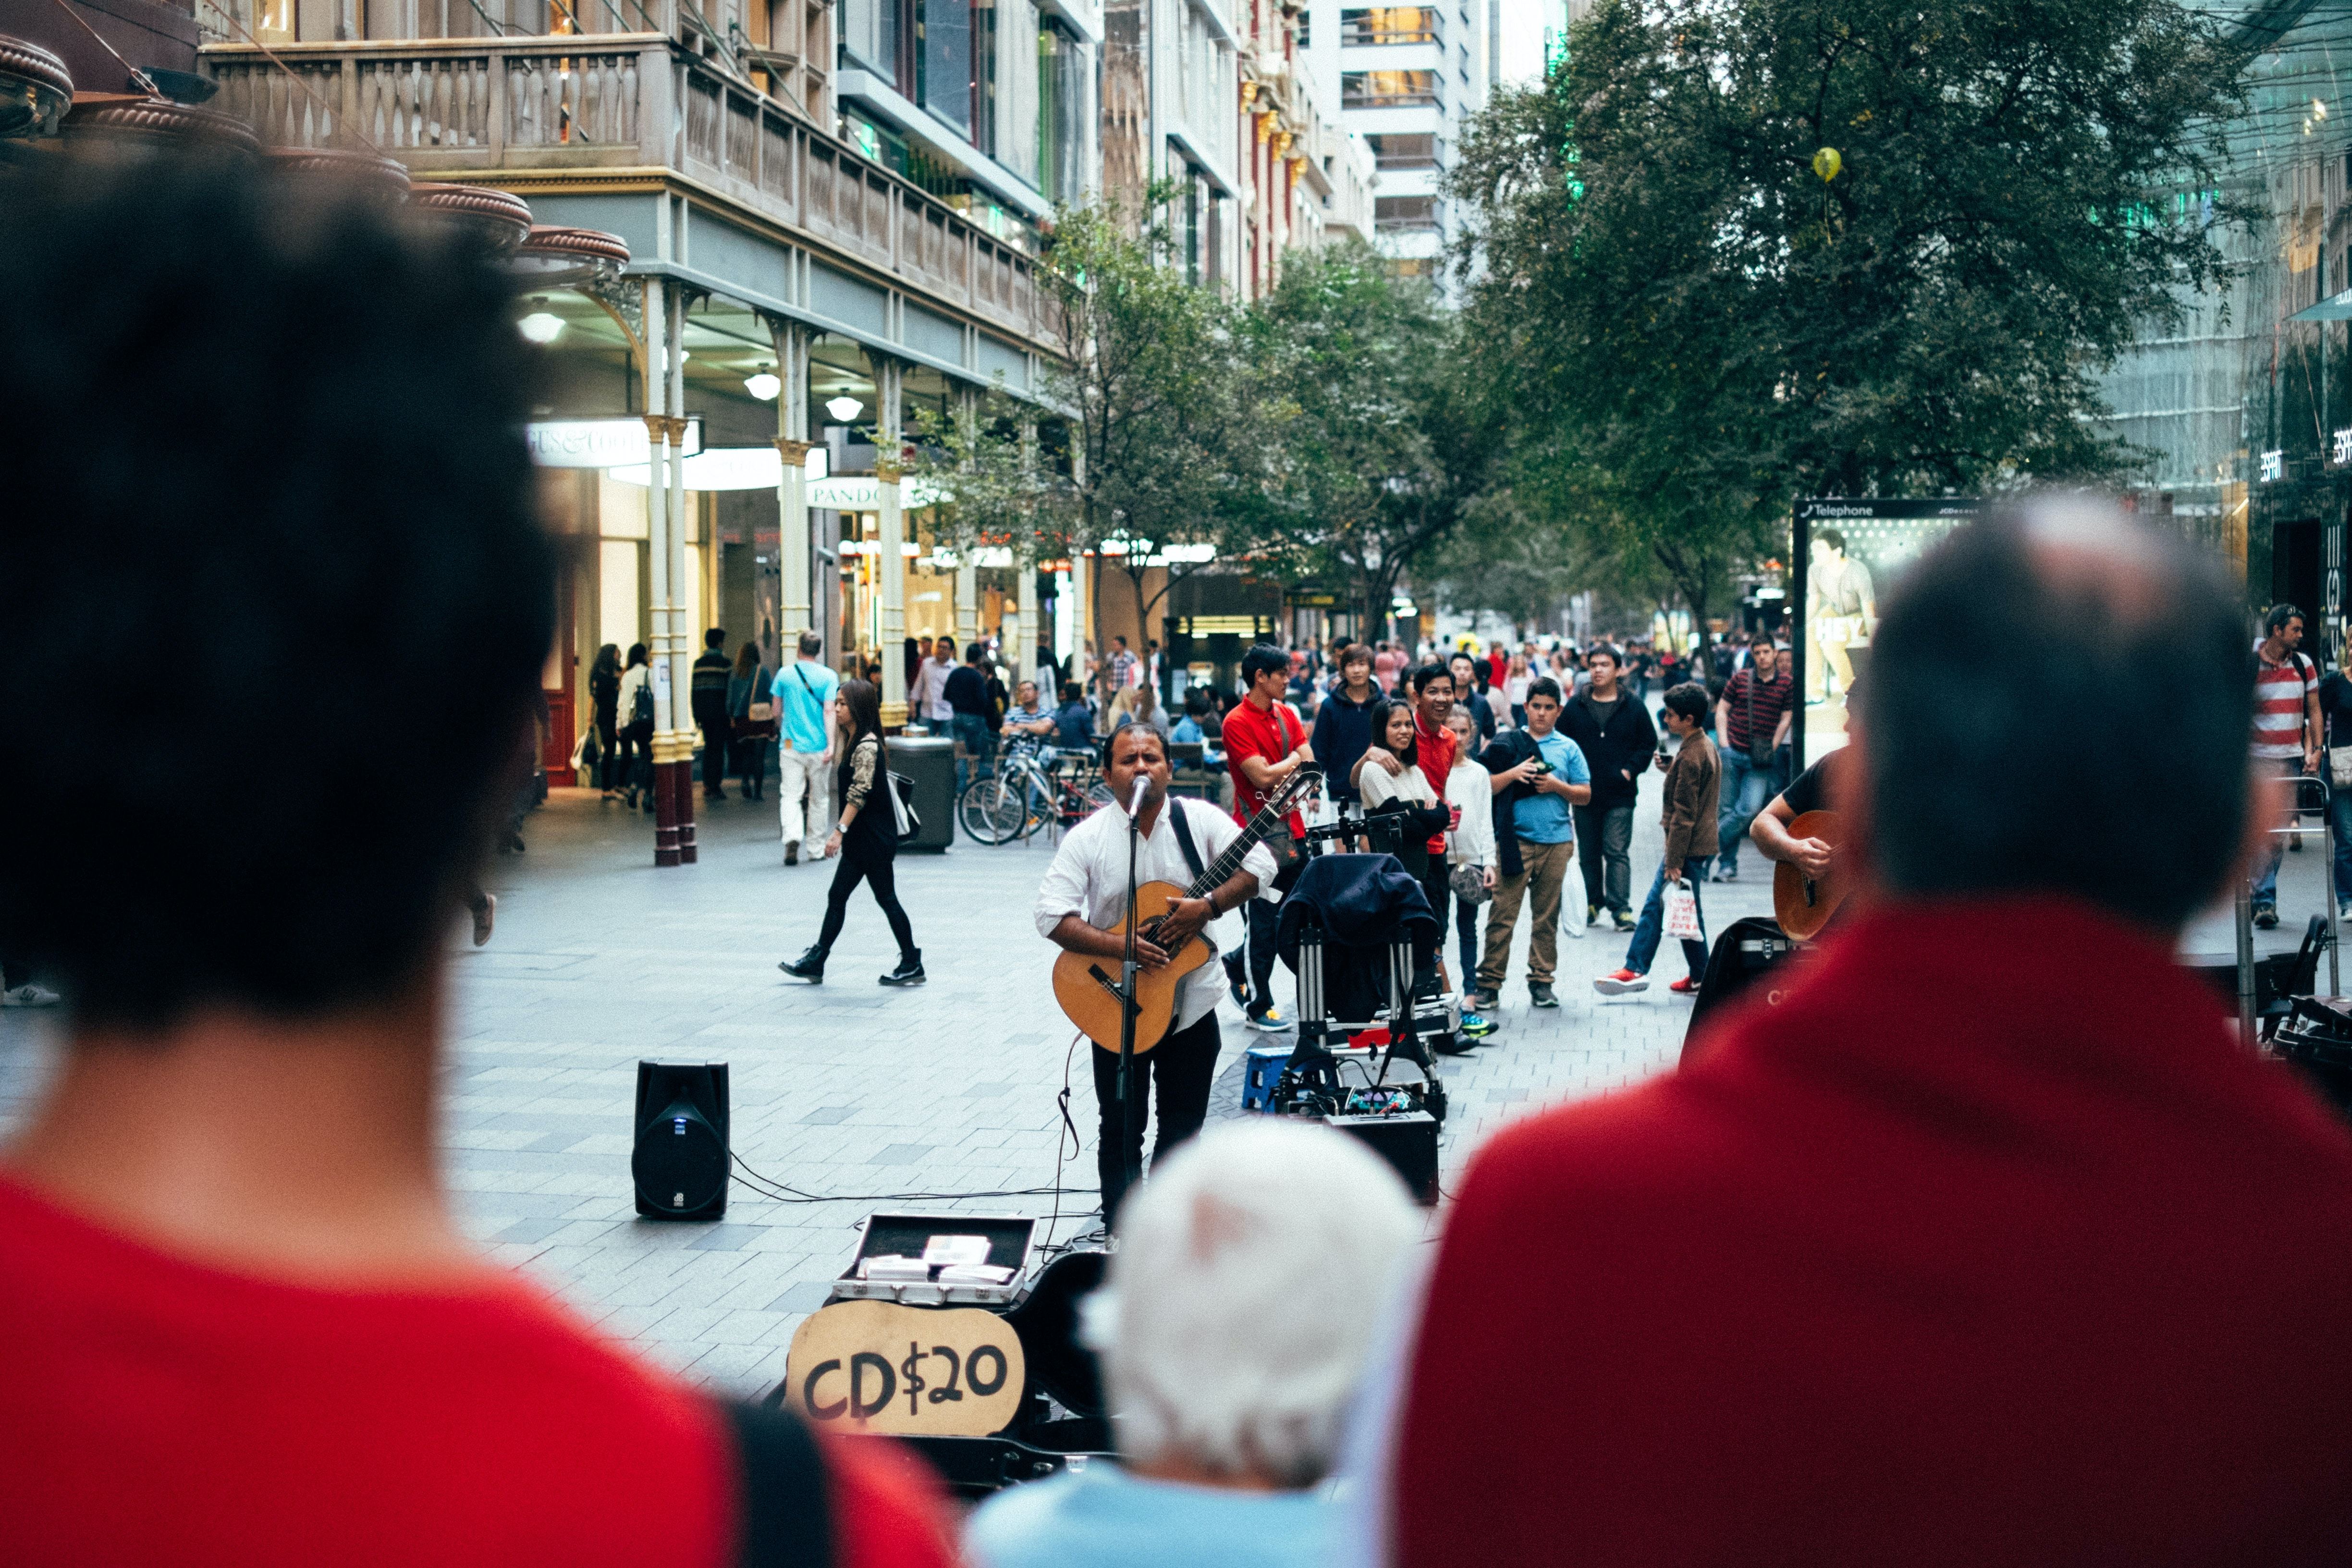 """A male guitar player busking on a crowded street with a sign reading """"CD $20"""""""